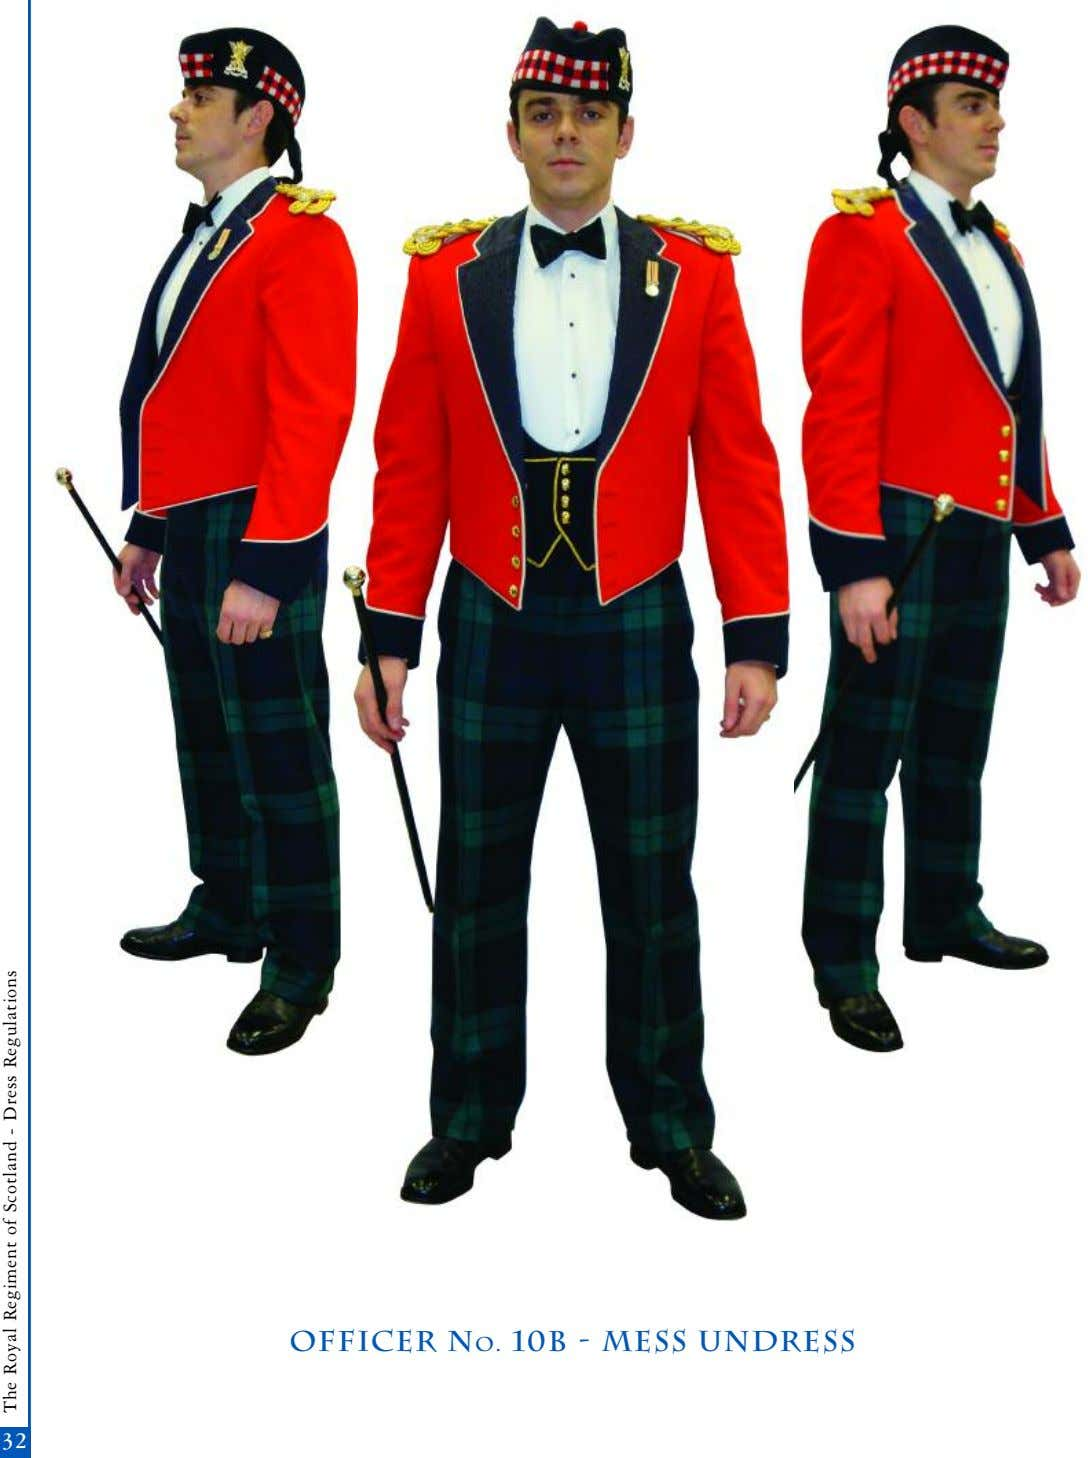 officer No. 10b - mess undress 32 The Royal Regiment of Scotland - Dress Regulations